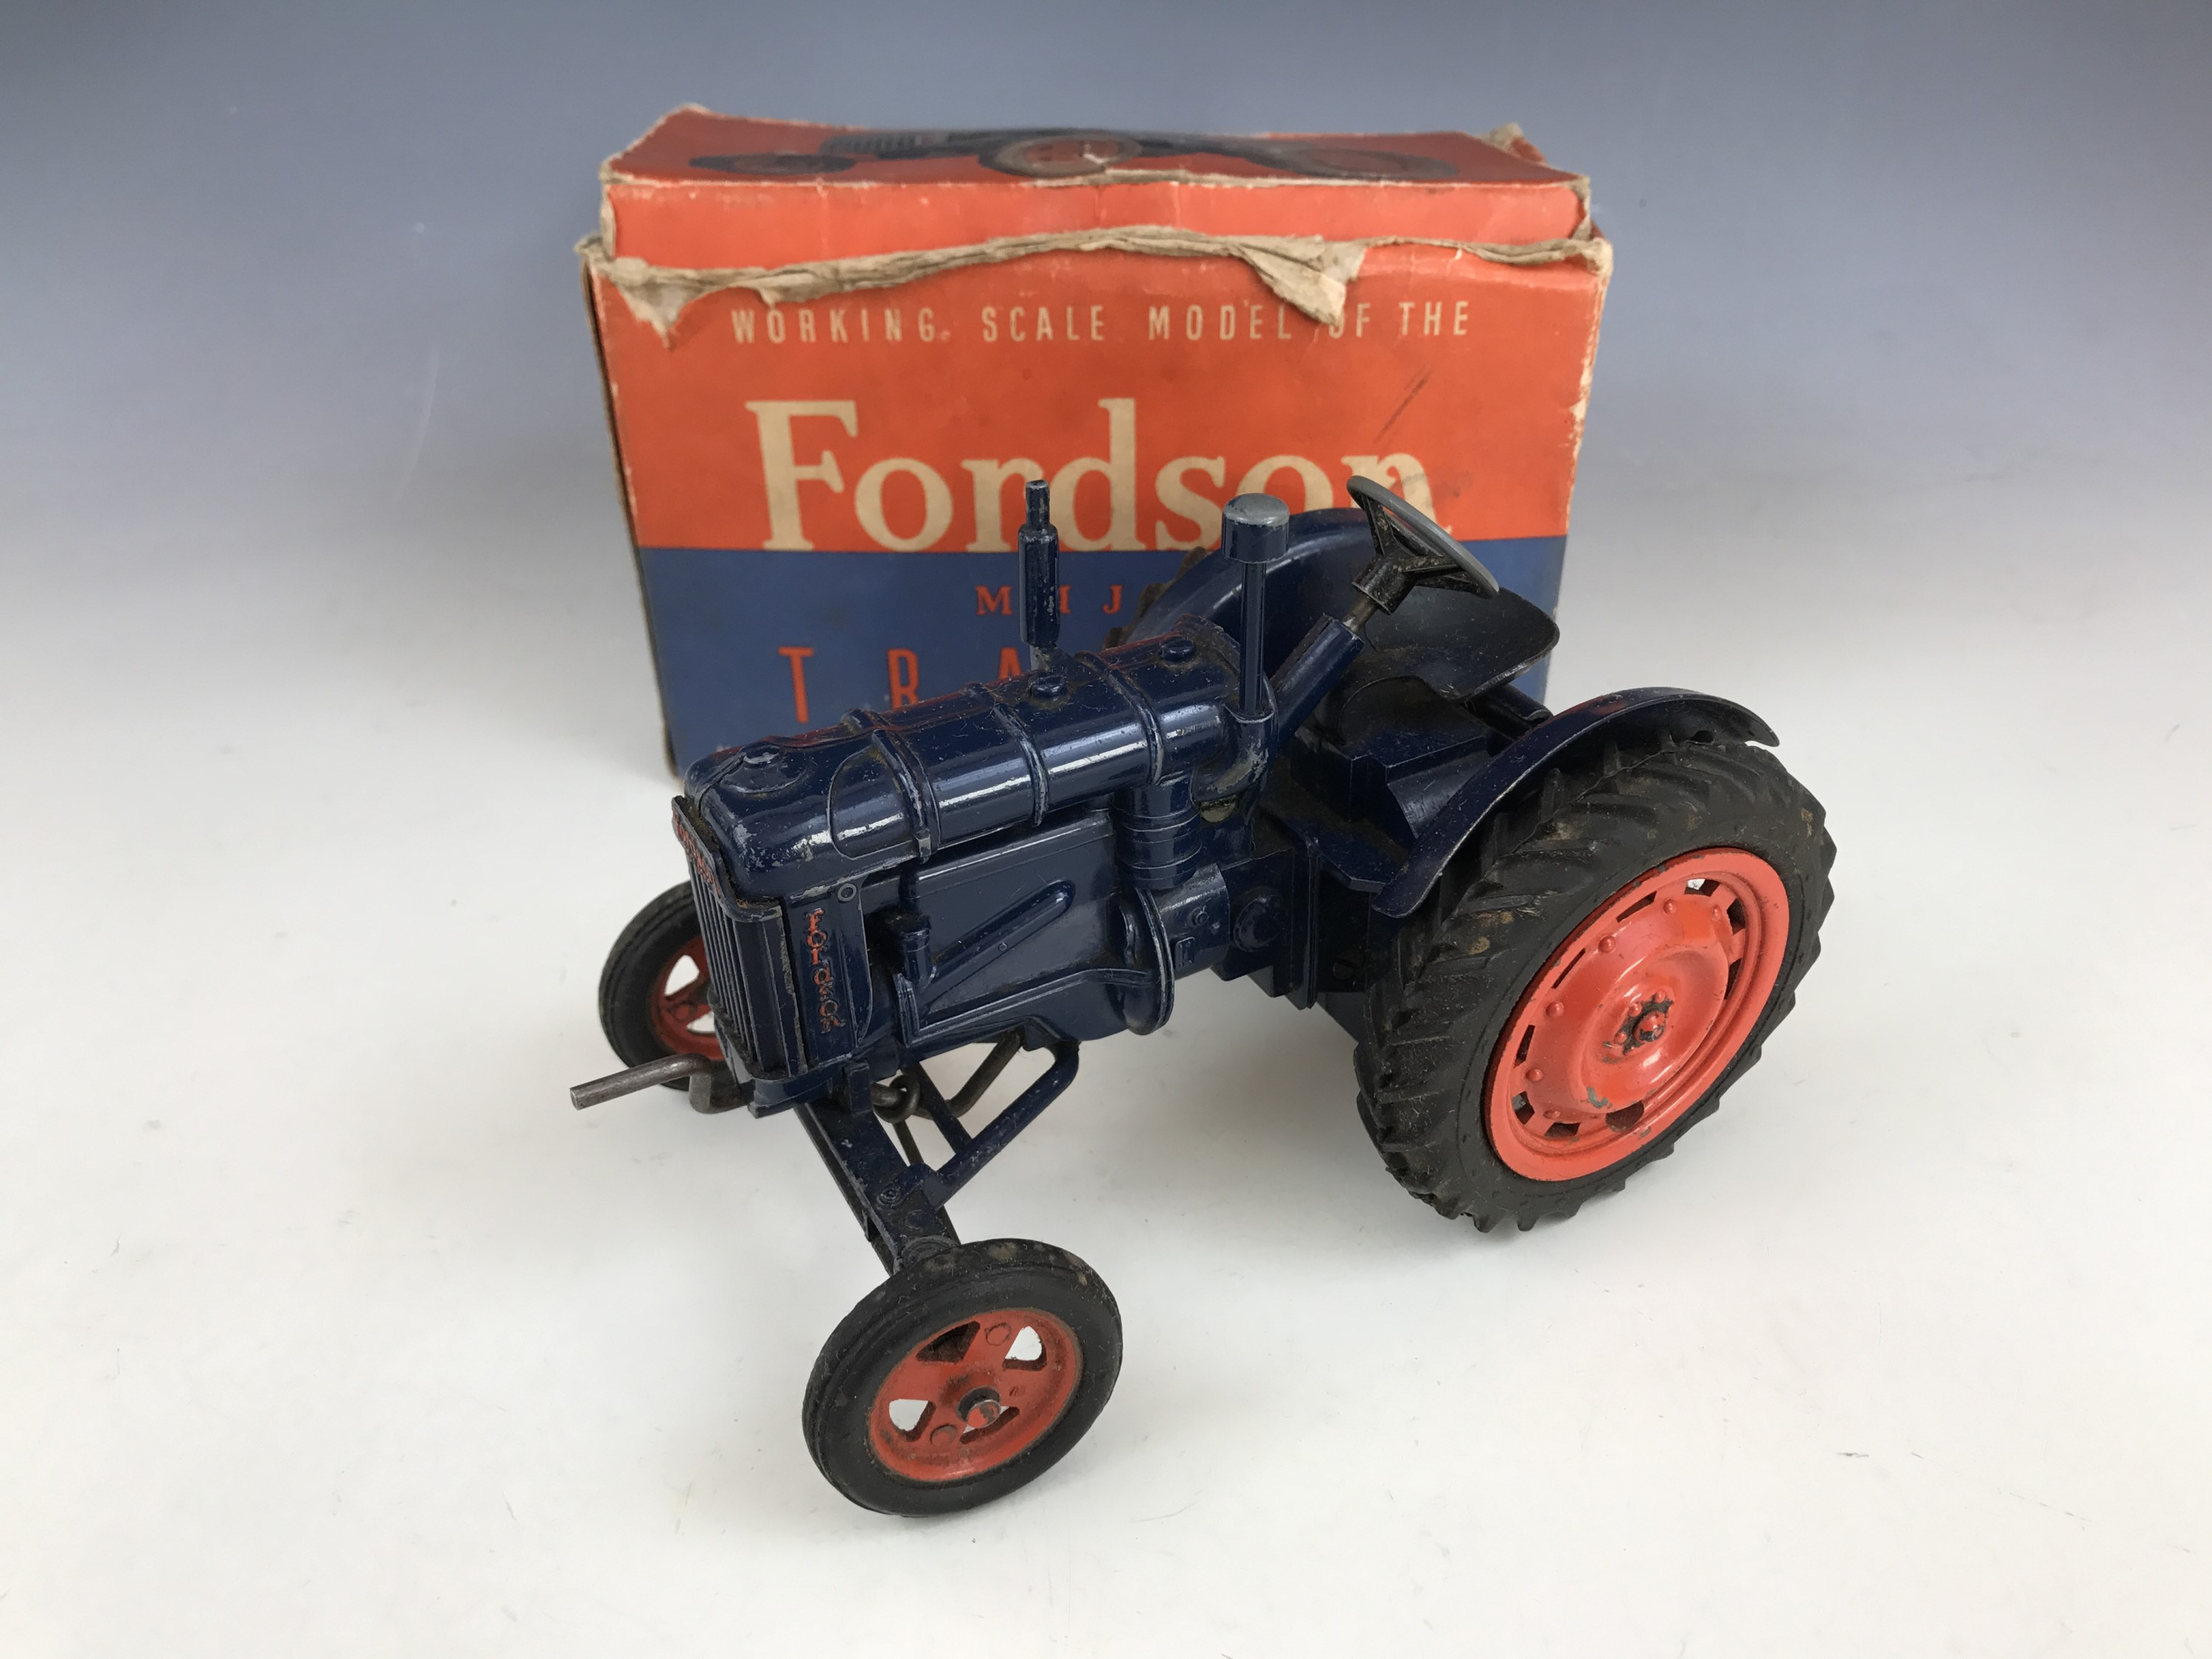 Lot 57 - A Chad Valley Co Ltd Working Scale Model of the New Fordson Major tractor, in navy blue with red